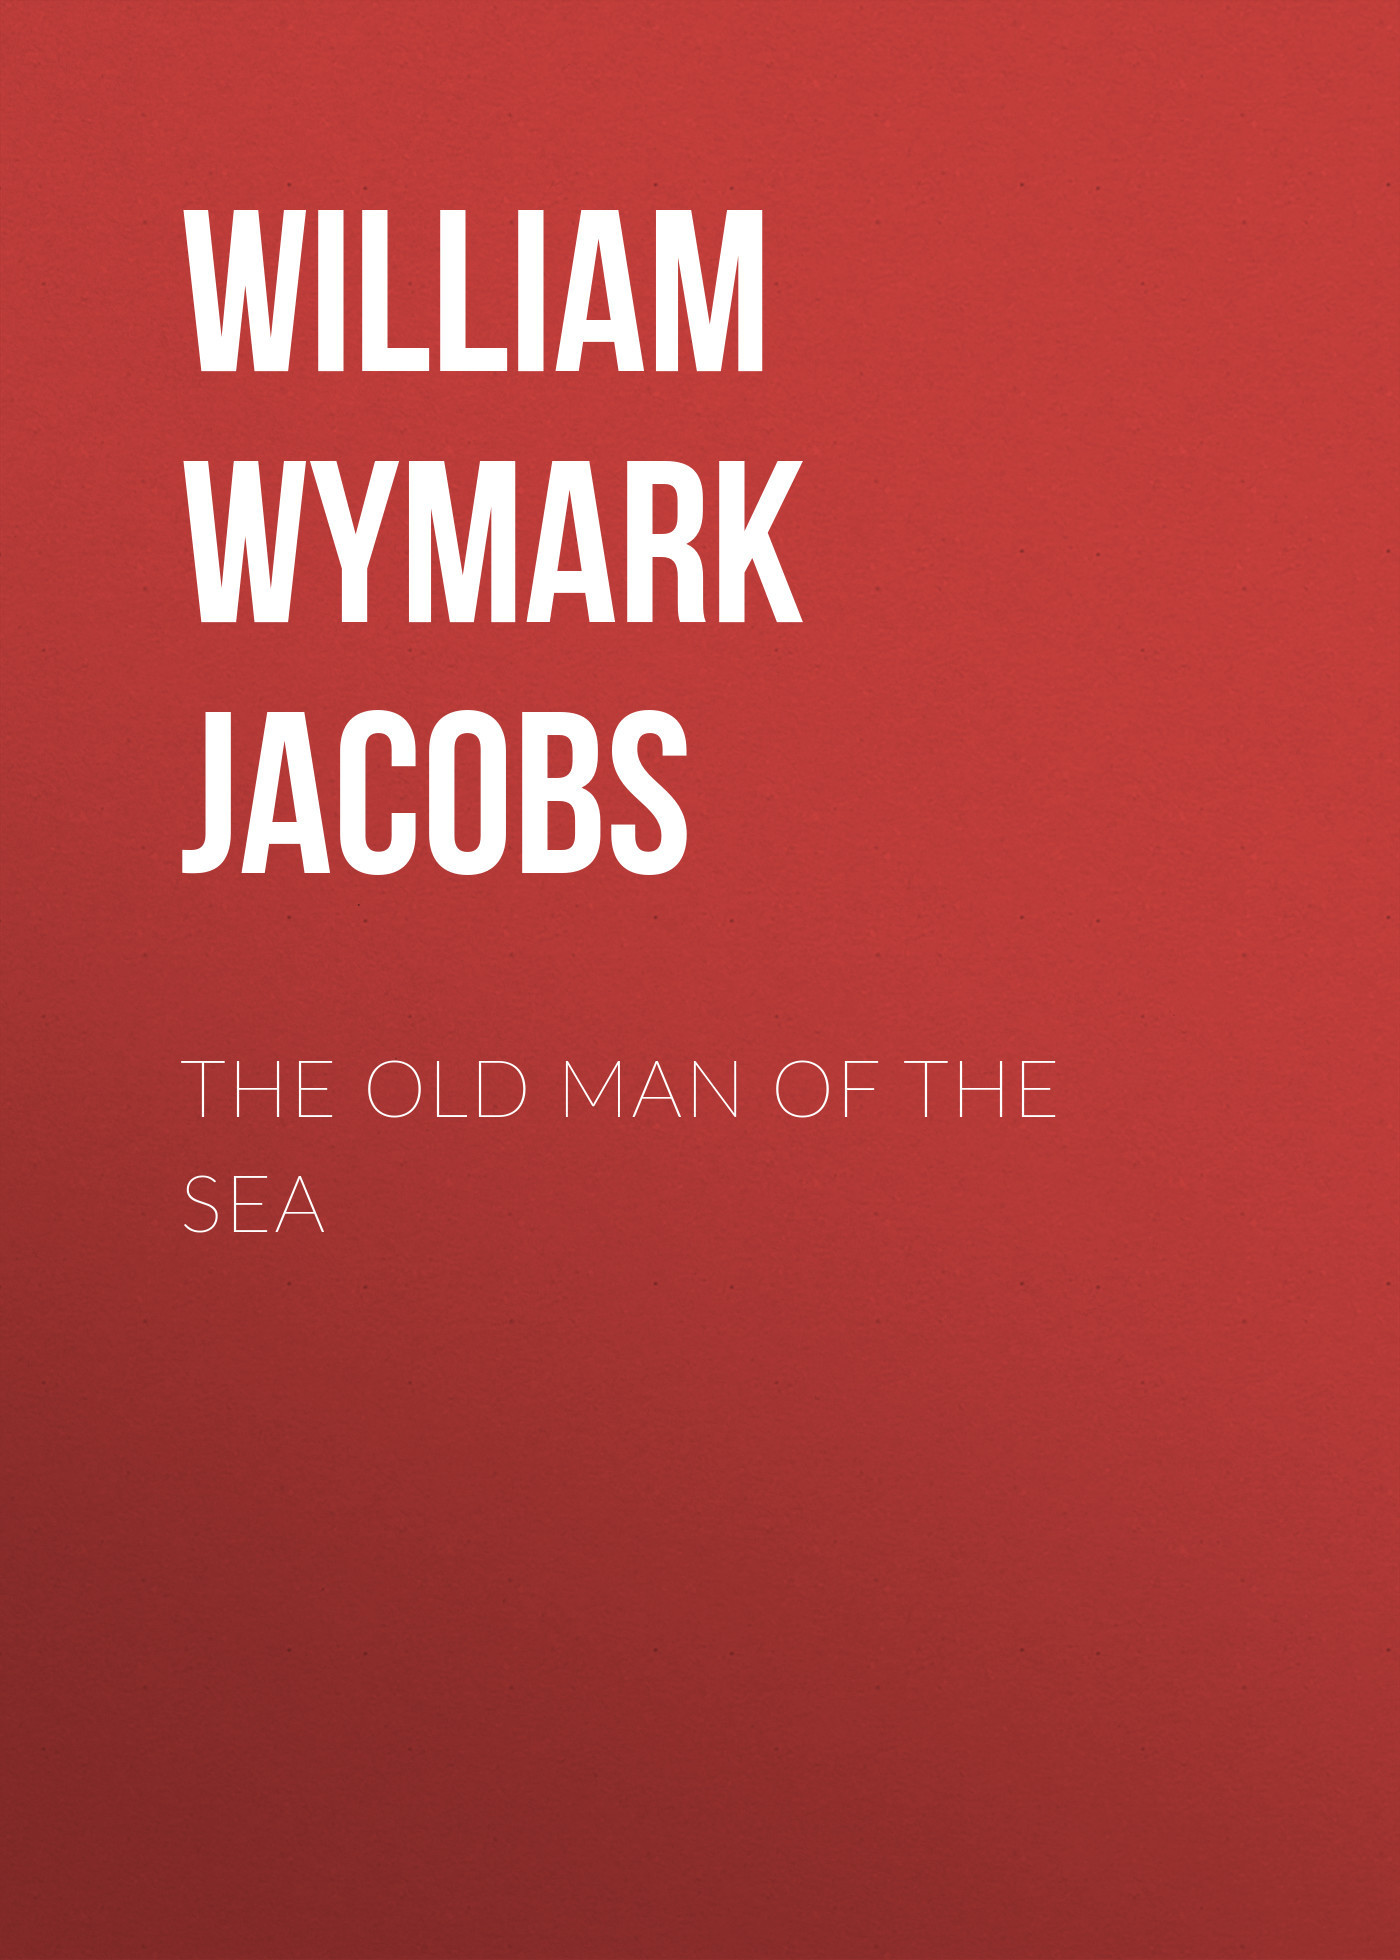 William Wymark Jacobs The Old Man of the Sea